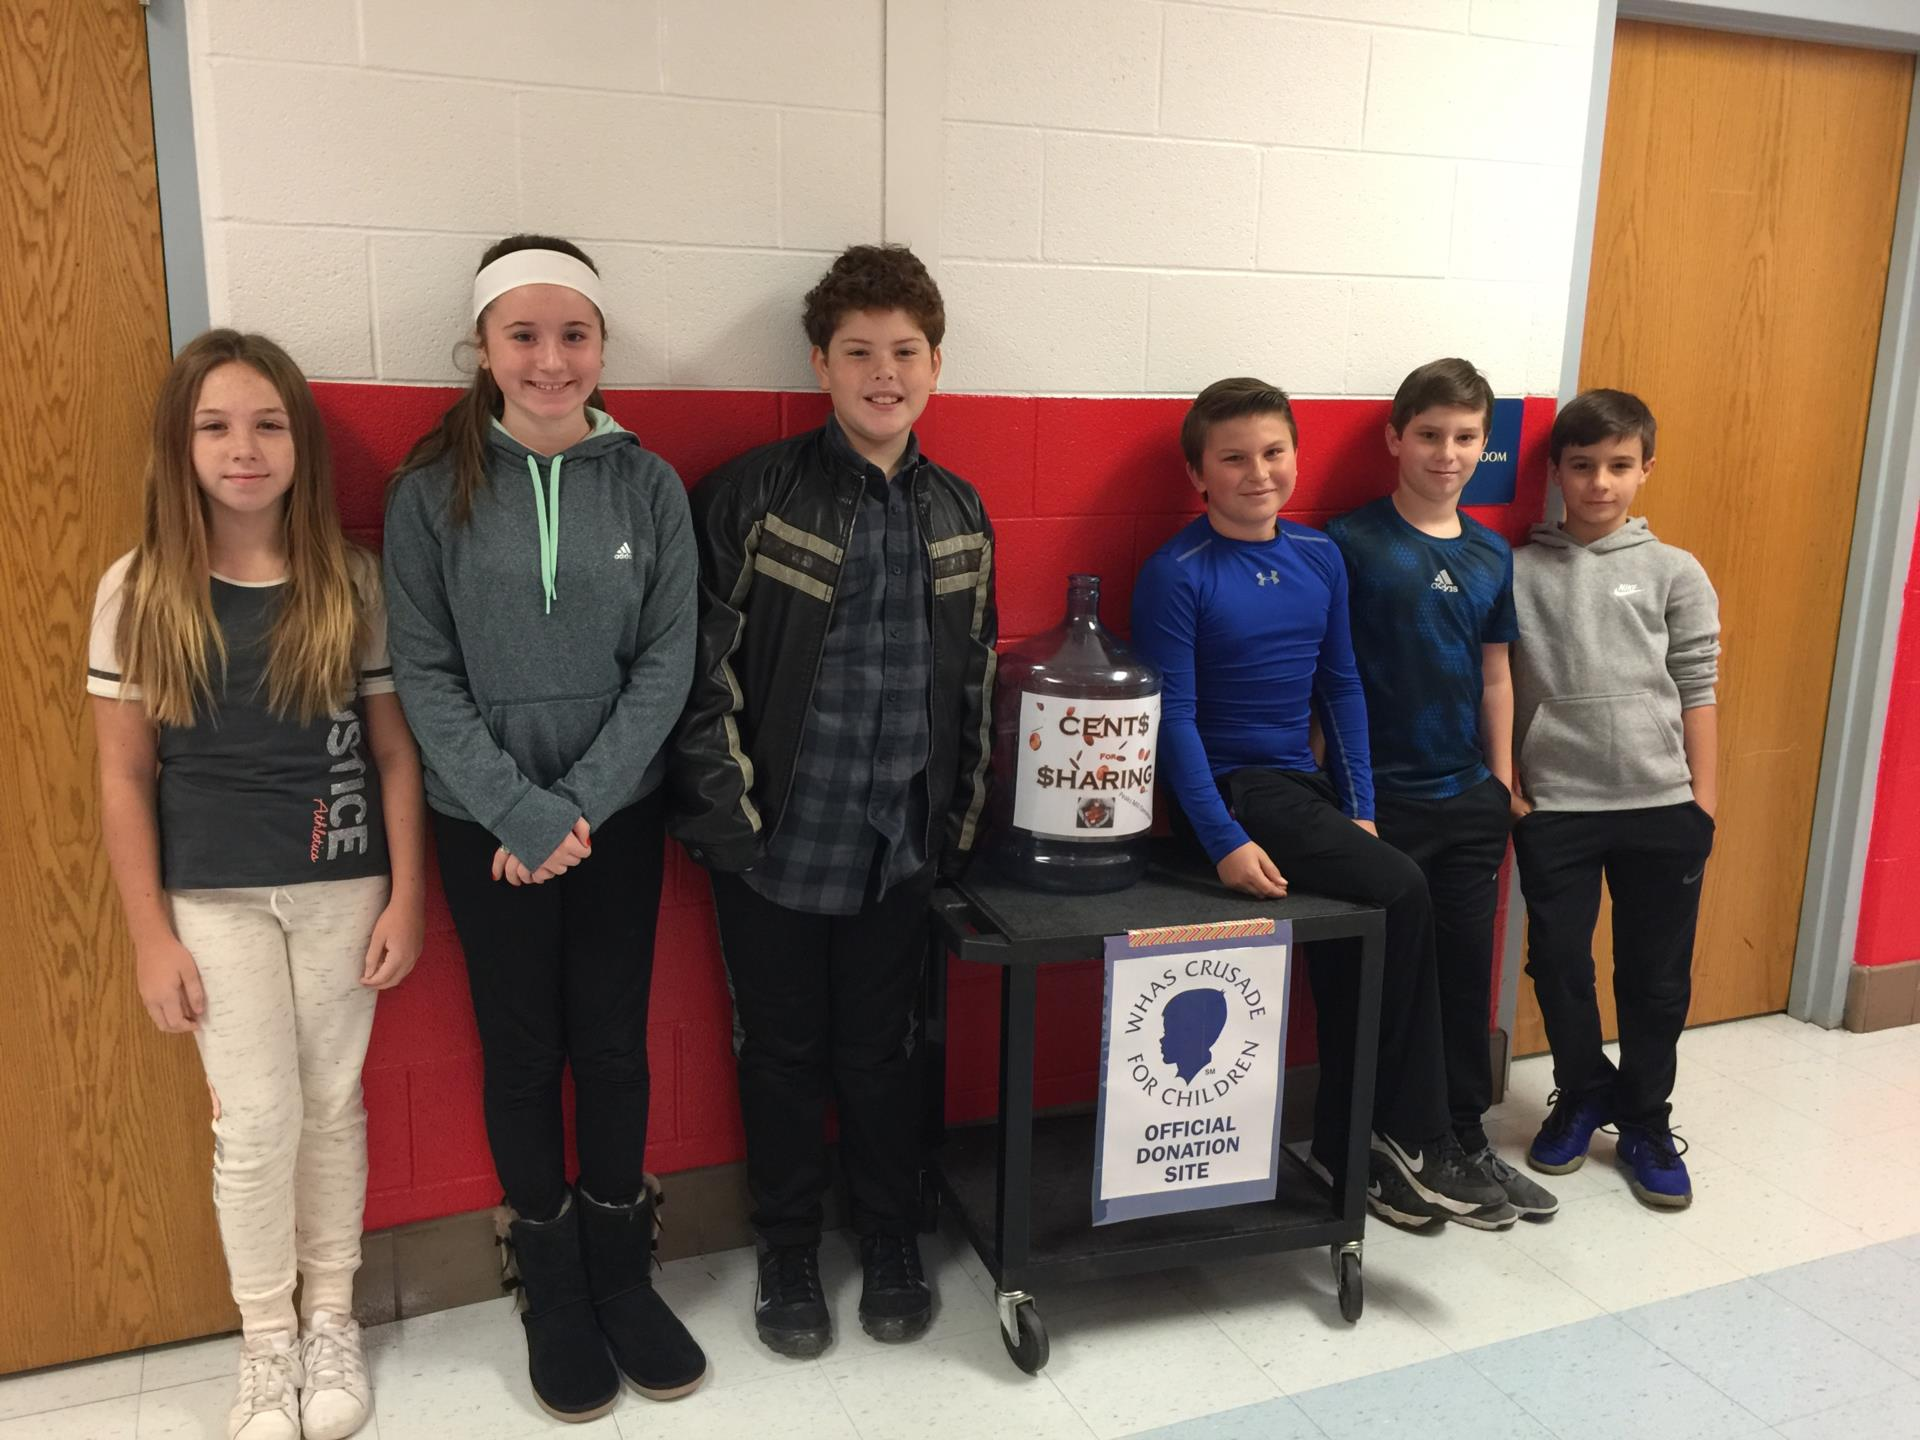 Students helping raise money for crusade for children